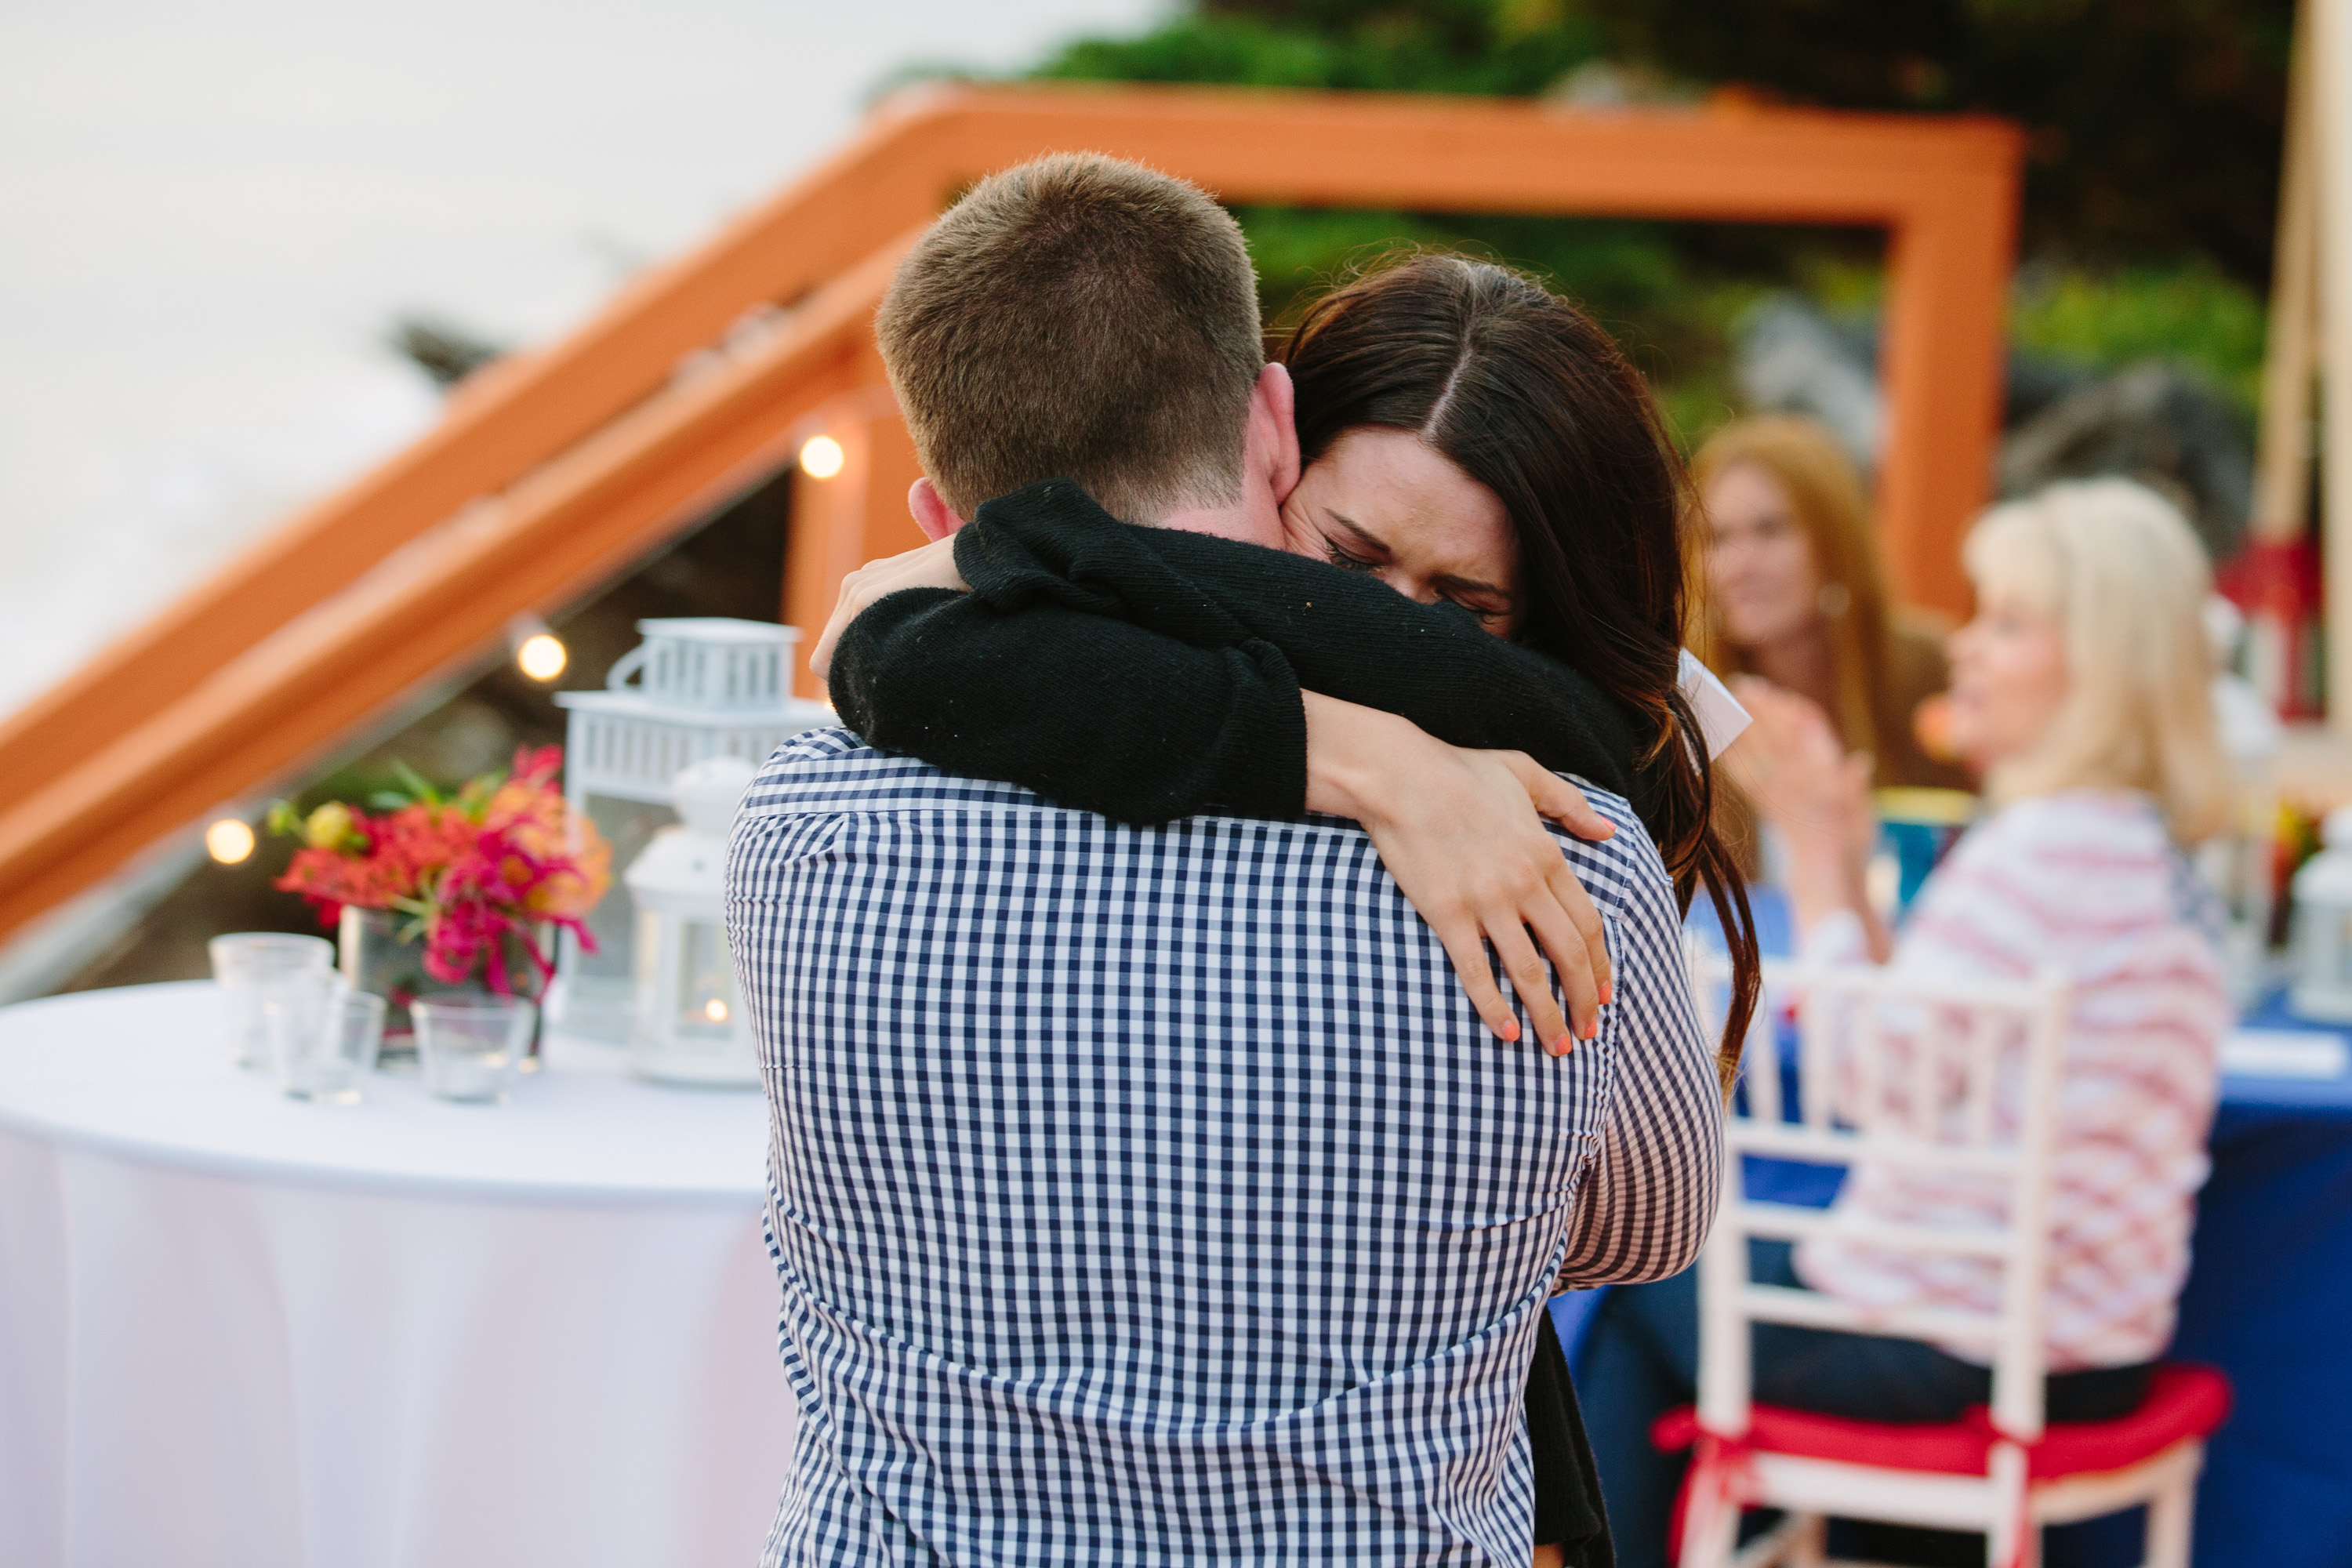 Surprise Marriage Proposal on Fourth of July019